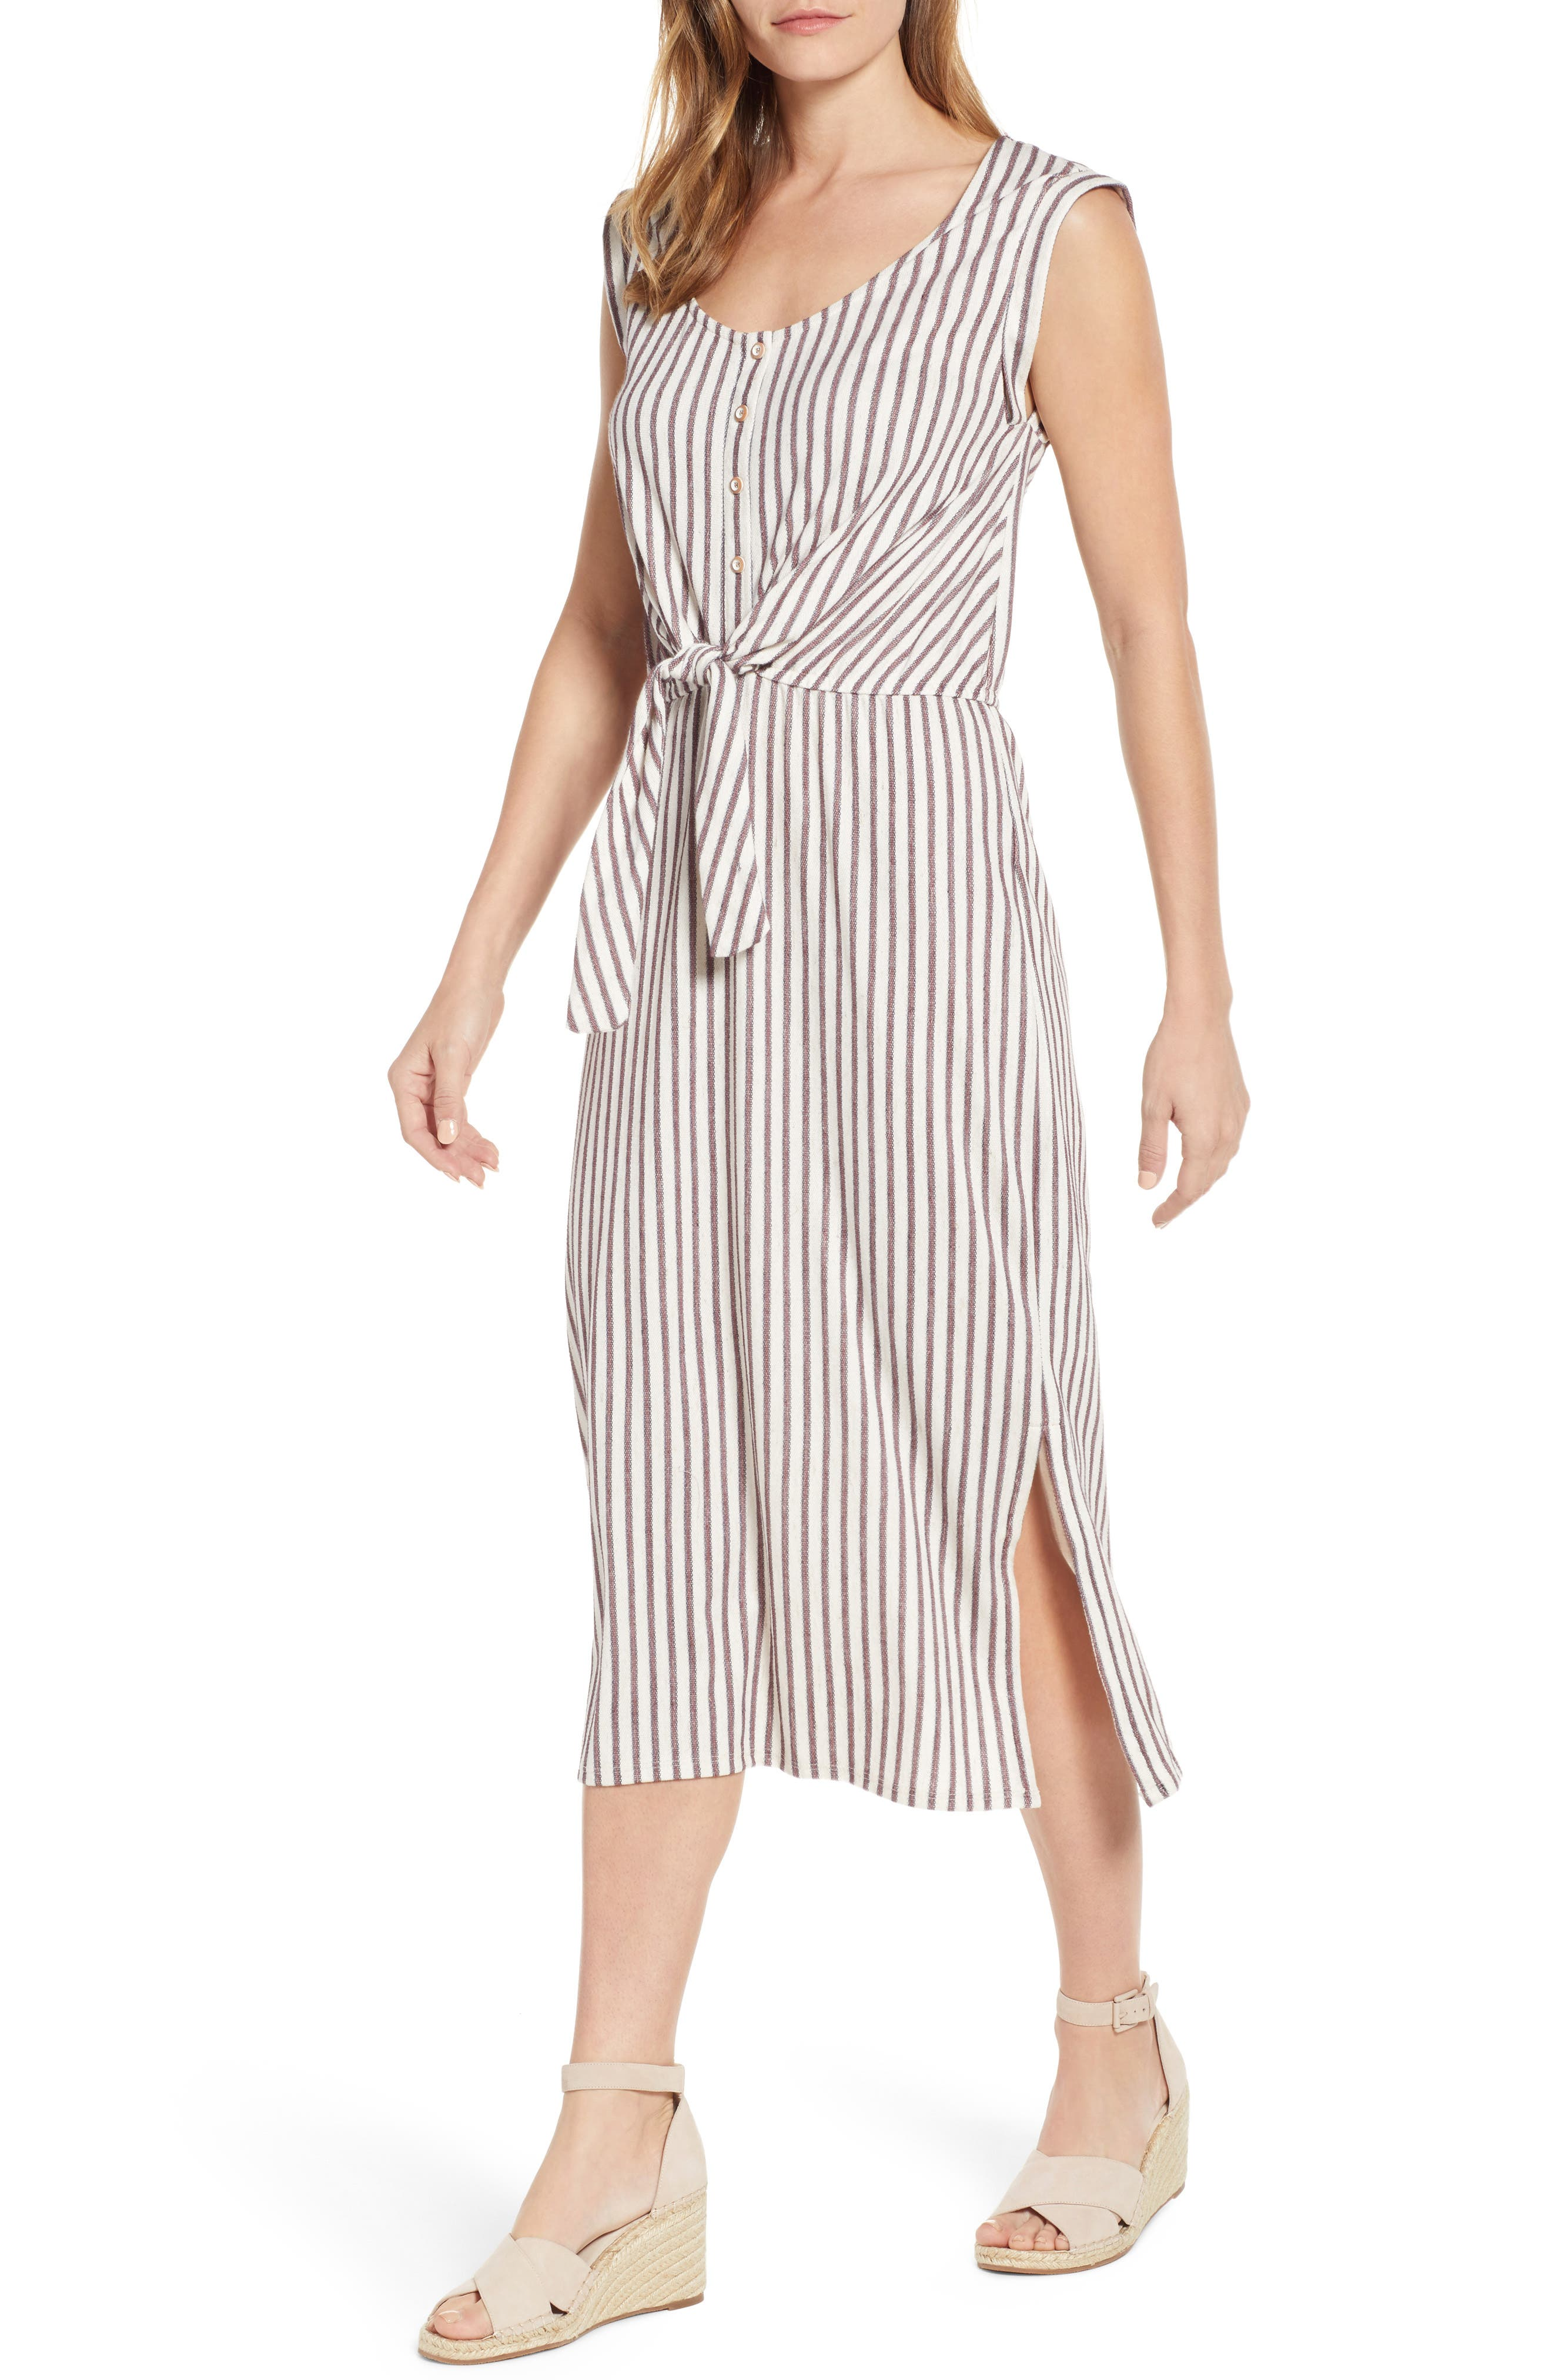 A sunny-day striped dress, kissed with cotton and linen, adds soft structure by way of a tie front and gently rolled cap sleeves. Style Name: Wit & Wisdom Stripe Tie Front Dress (Nordstrom Exclusive). Style Number: 5777923. Available in stores.